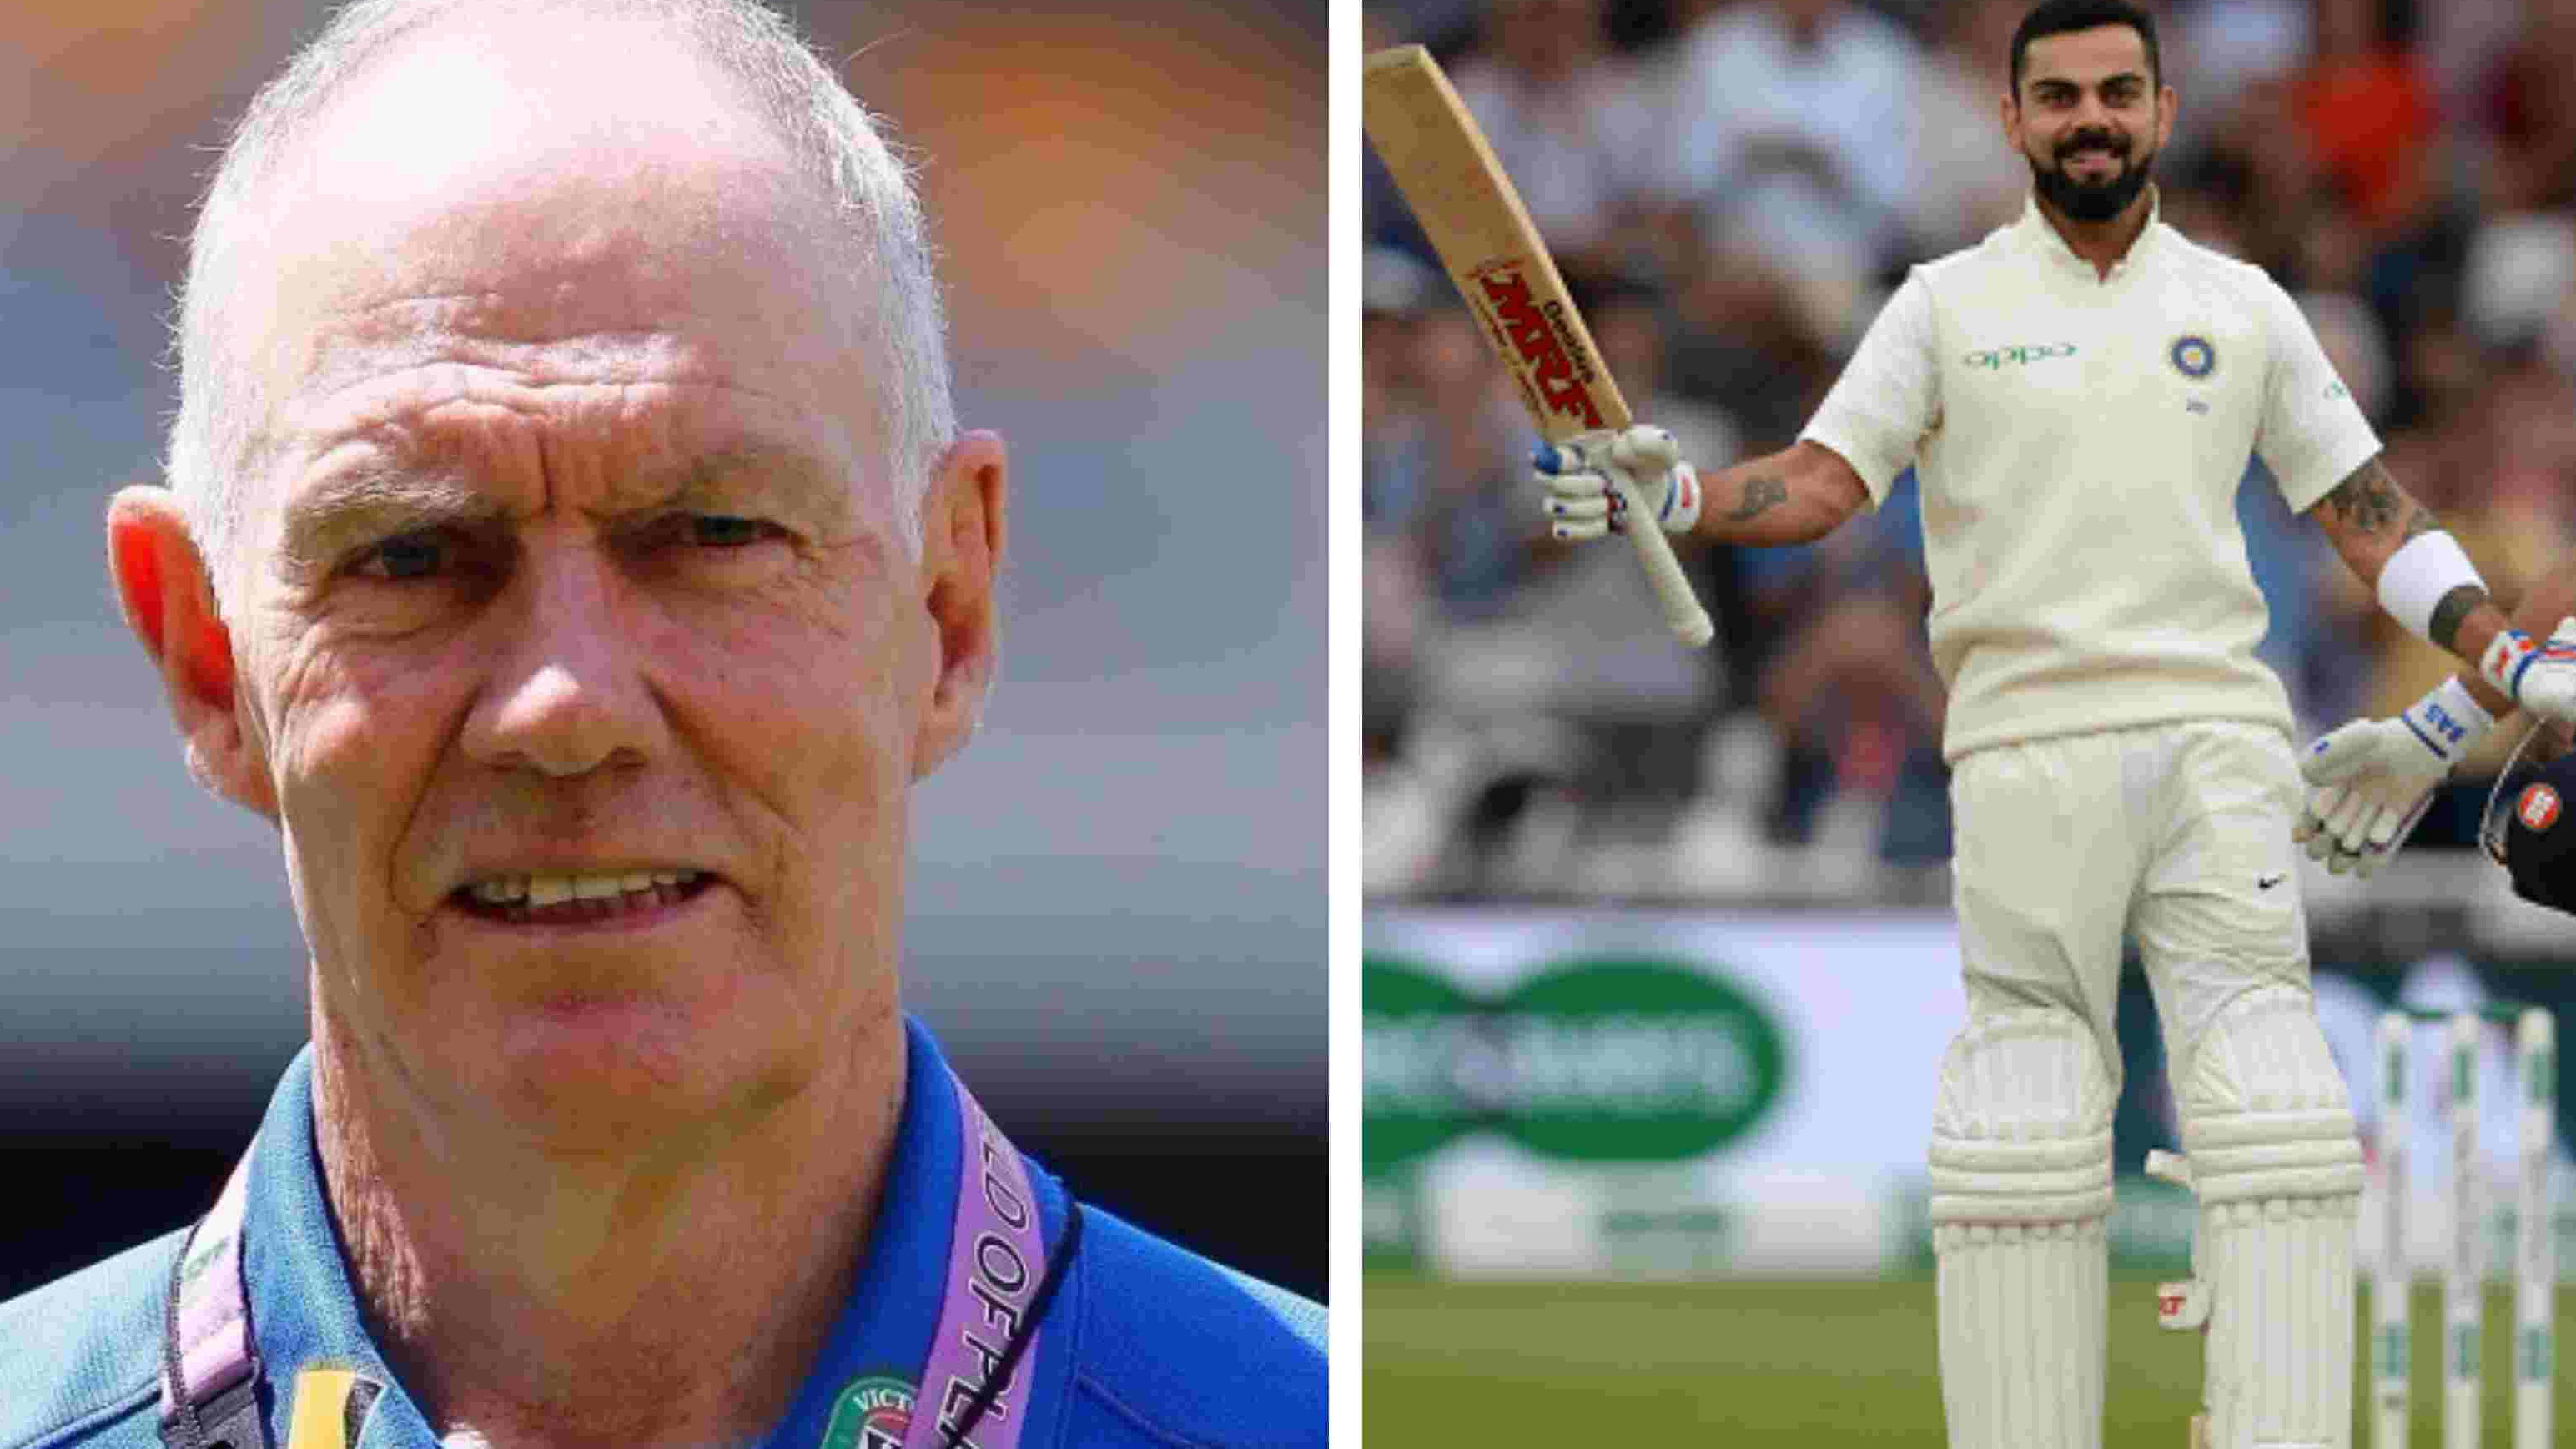 ENG v IND 2018: Virat Kohli's best is yet to come, reckons Greg Chappell